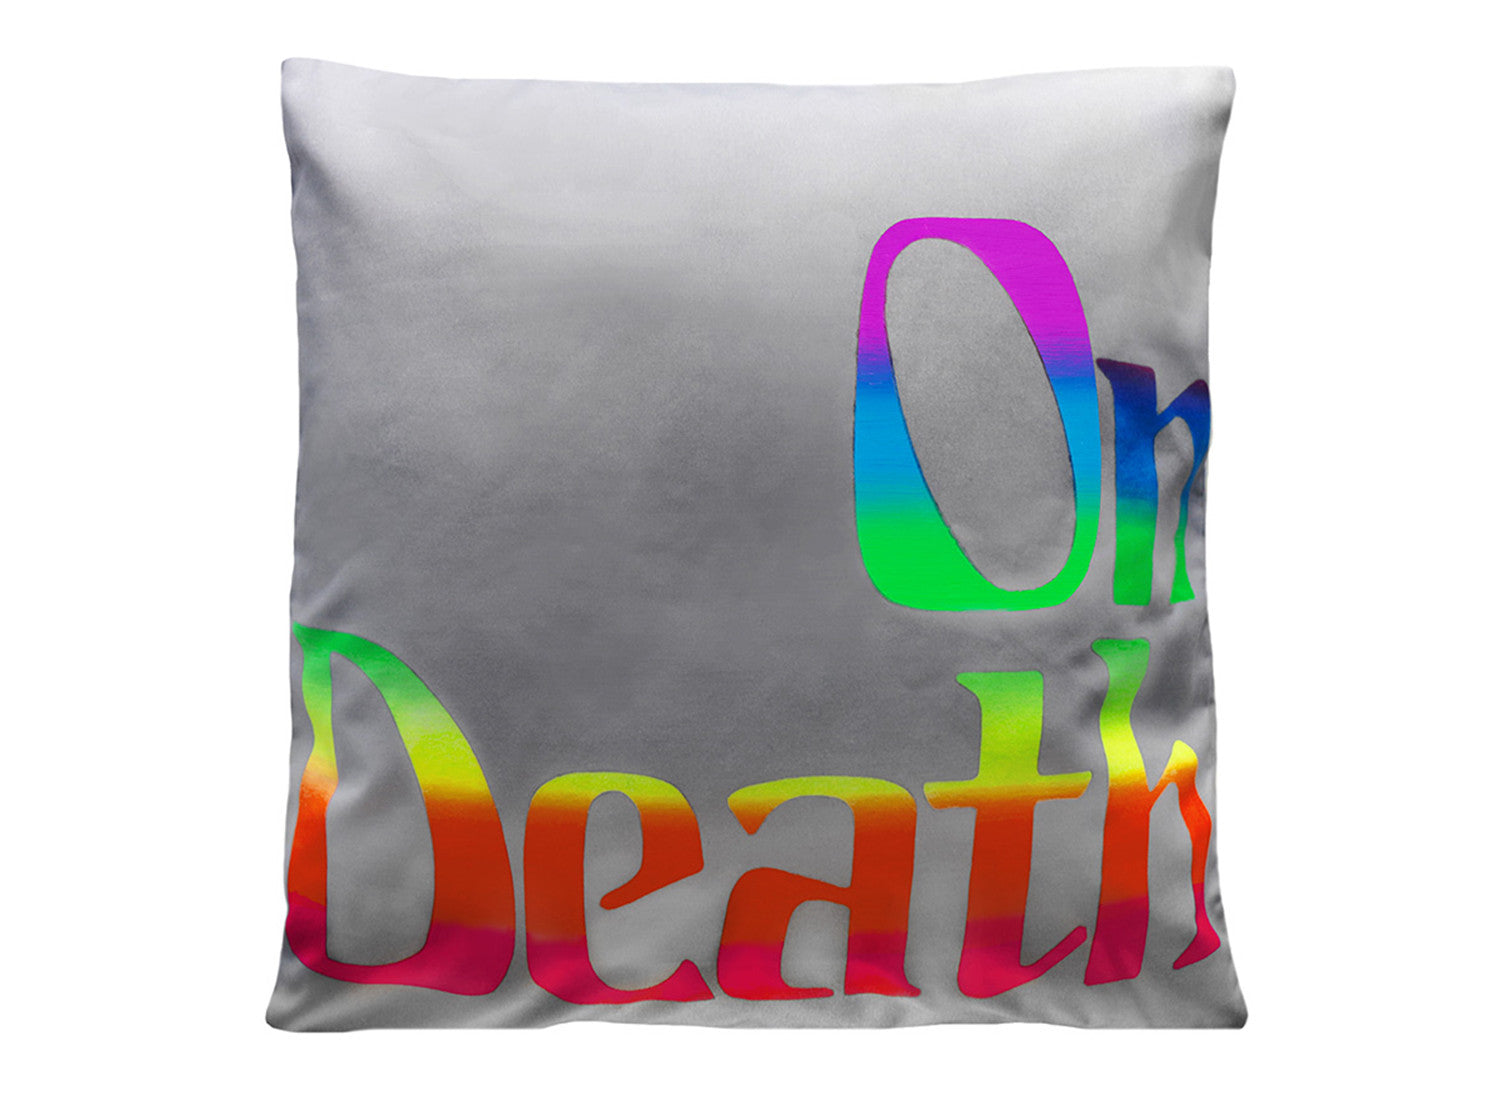 On Death Art Pillow